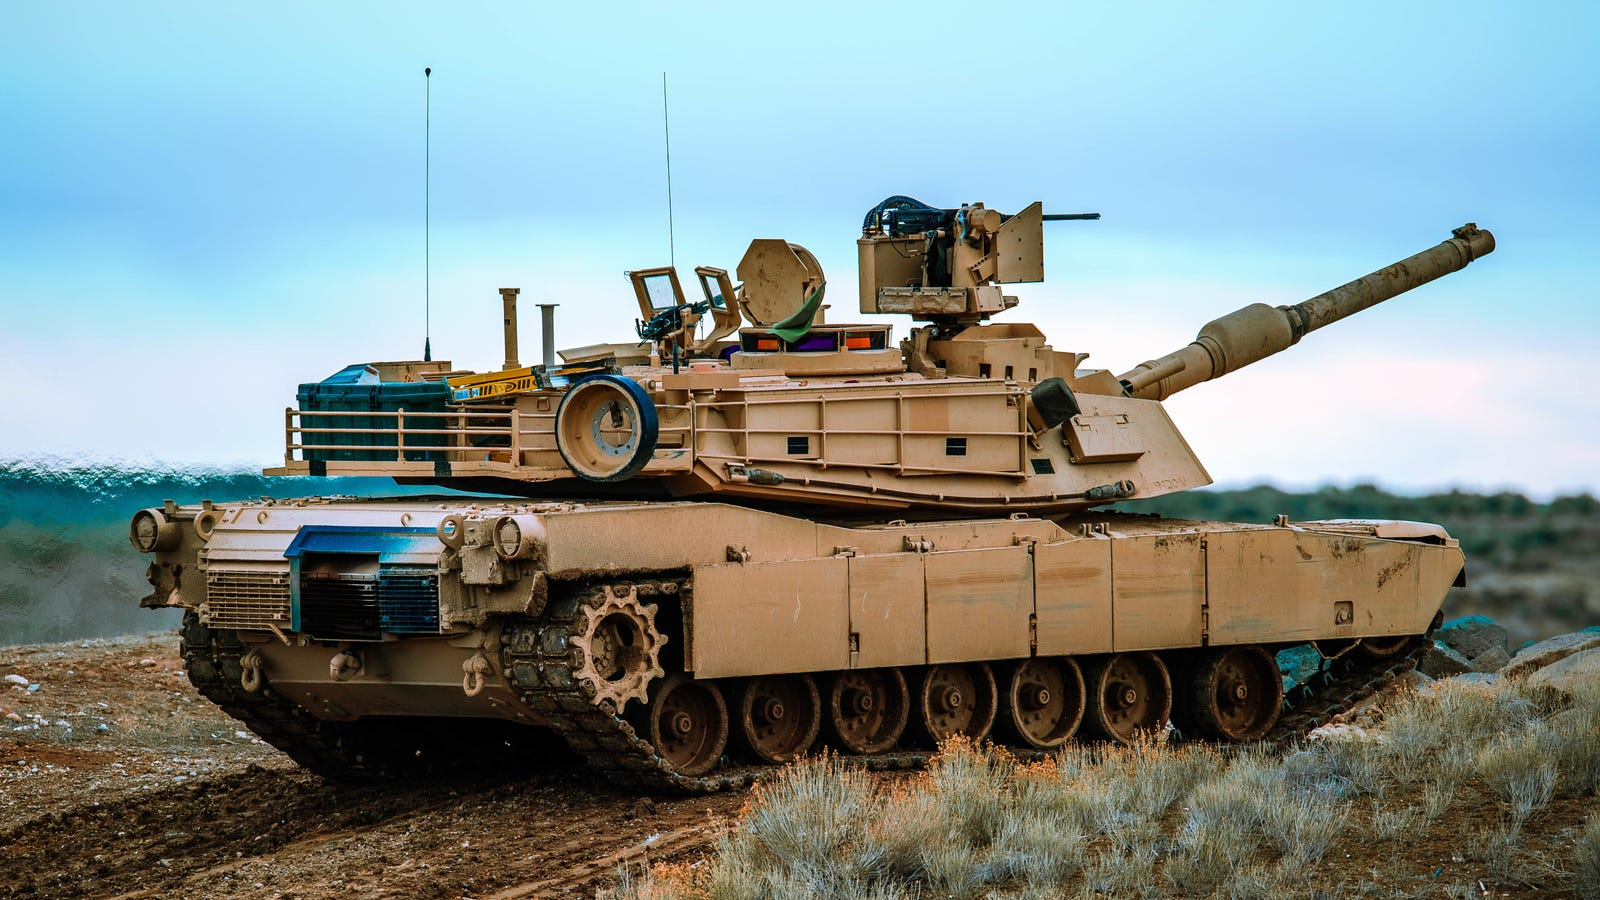 Here 39 s how the u s army is upgrading the abrams tank for its fifth decade in service - Army tank pictures ...